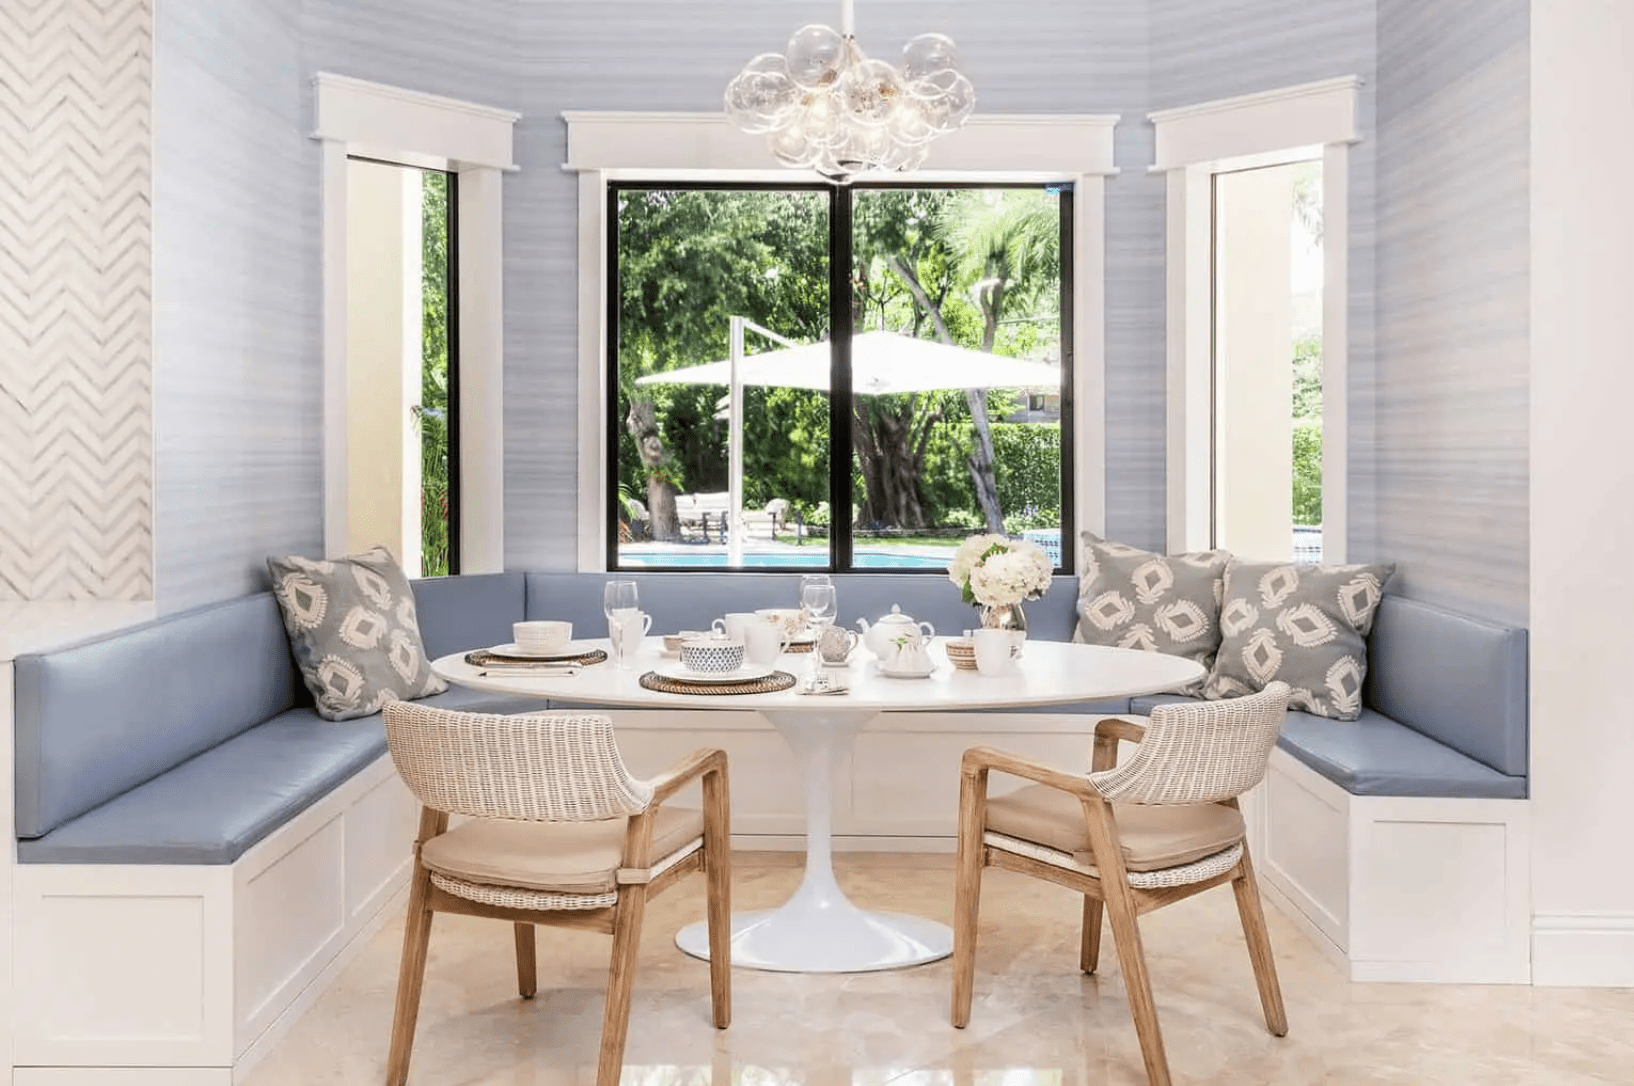 A dining room with a light blue banquette and matching light blue walls